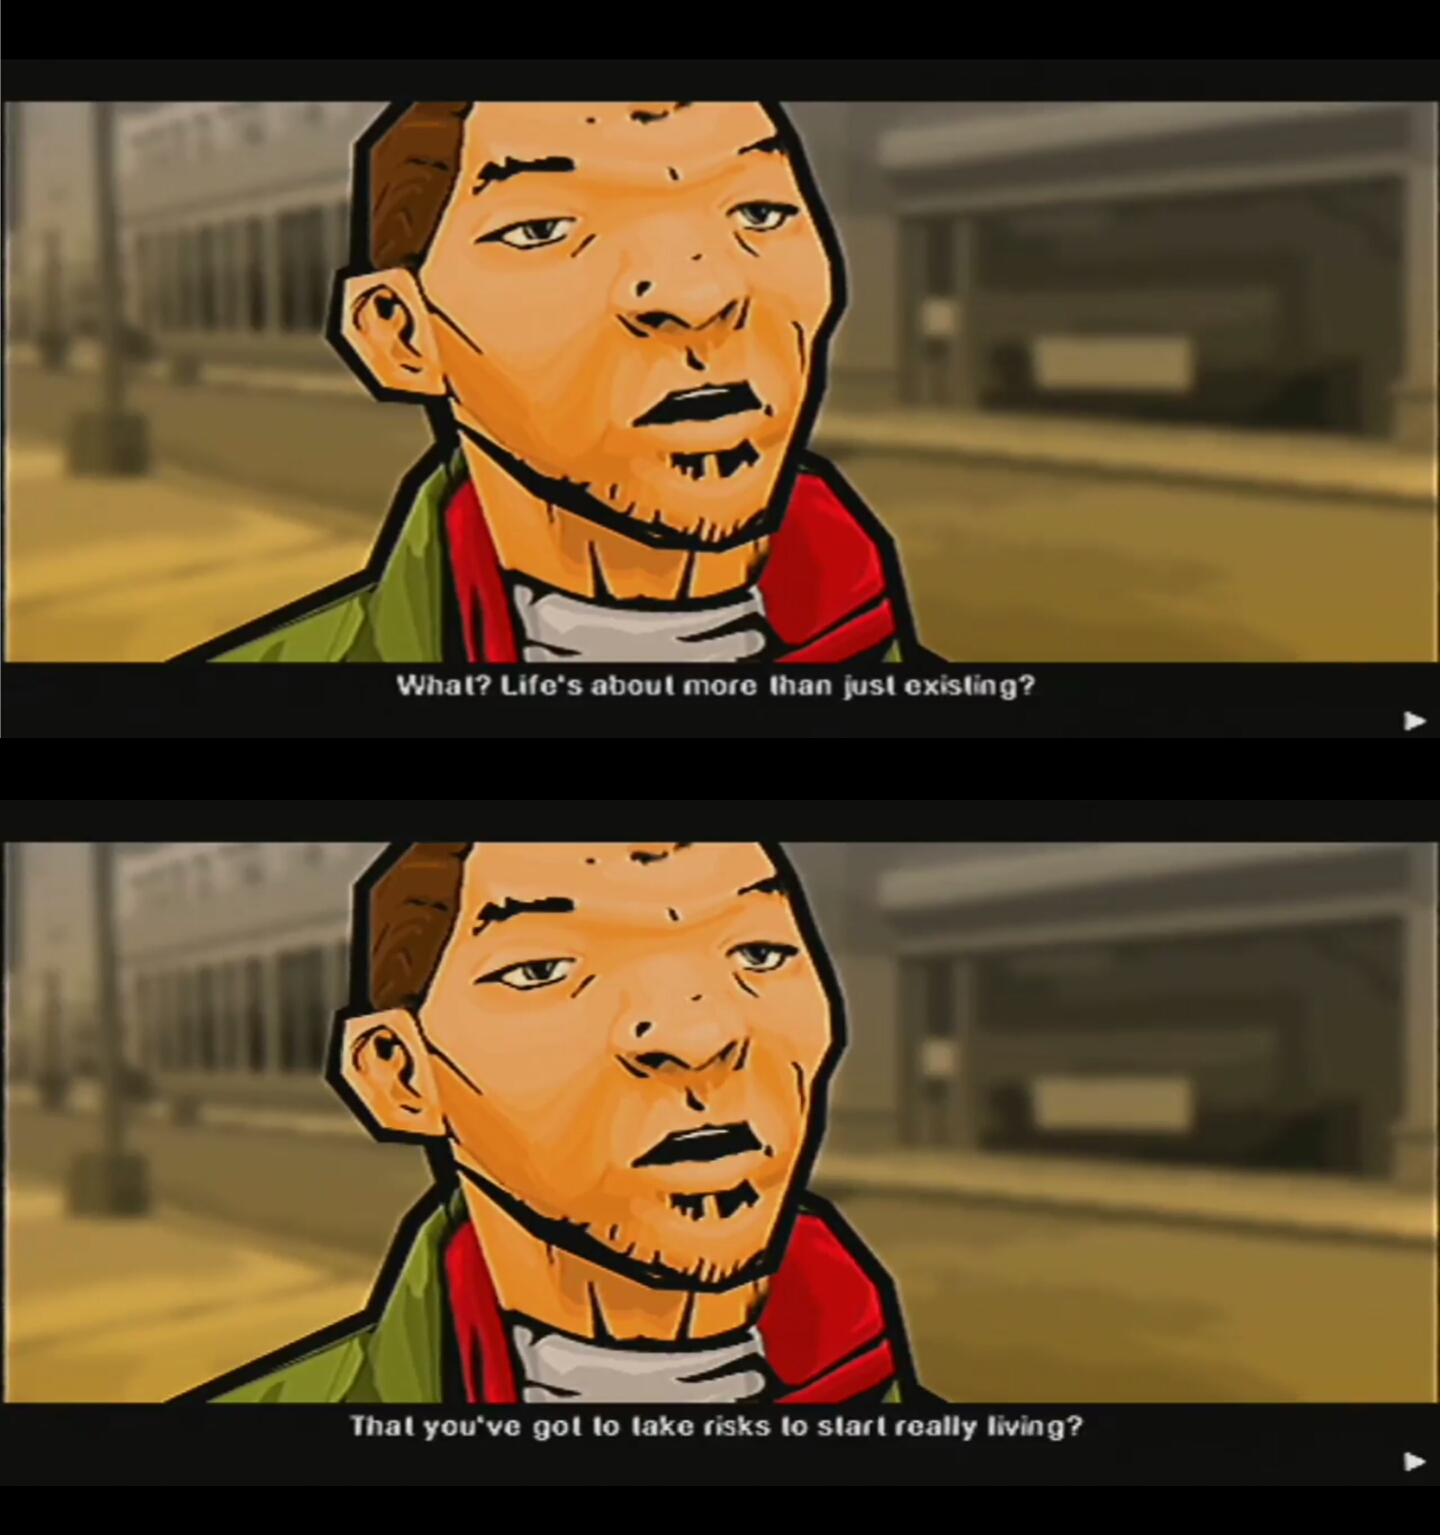 [Image] Had a rough morning thinking about my rut in life, played some games to get my mind off it, then Grand Theft Auto dropped some knowledge on me.